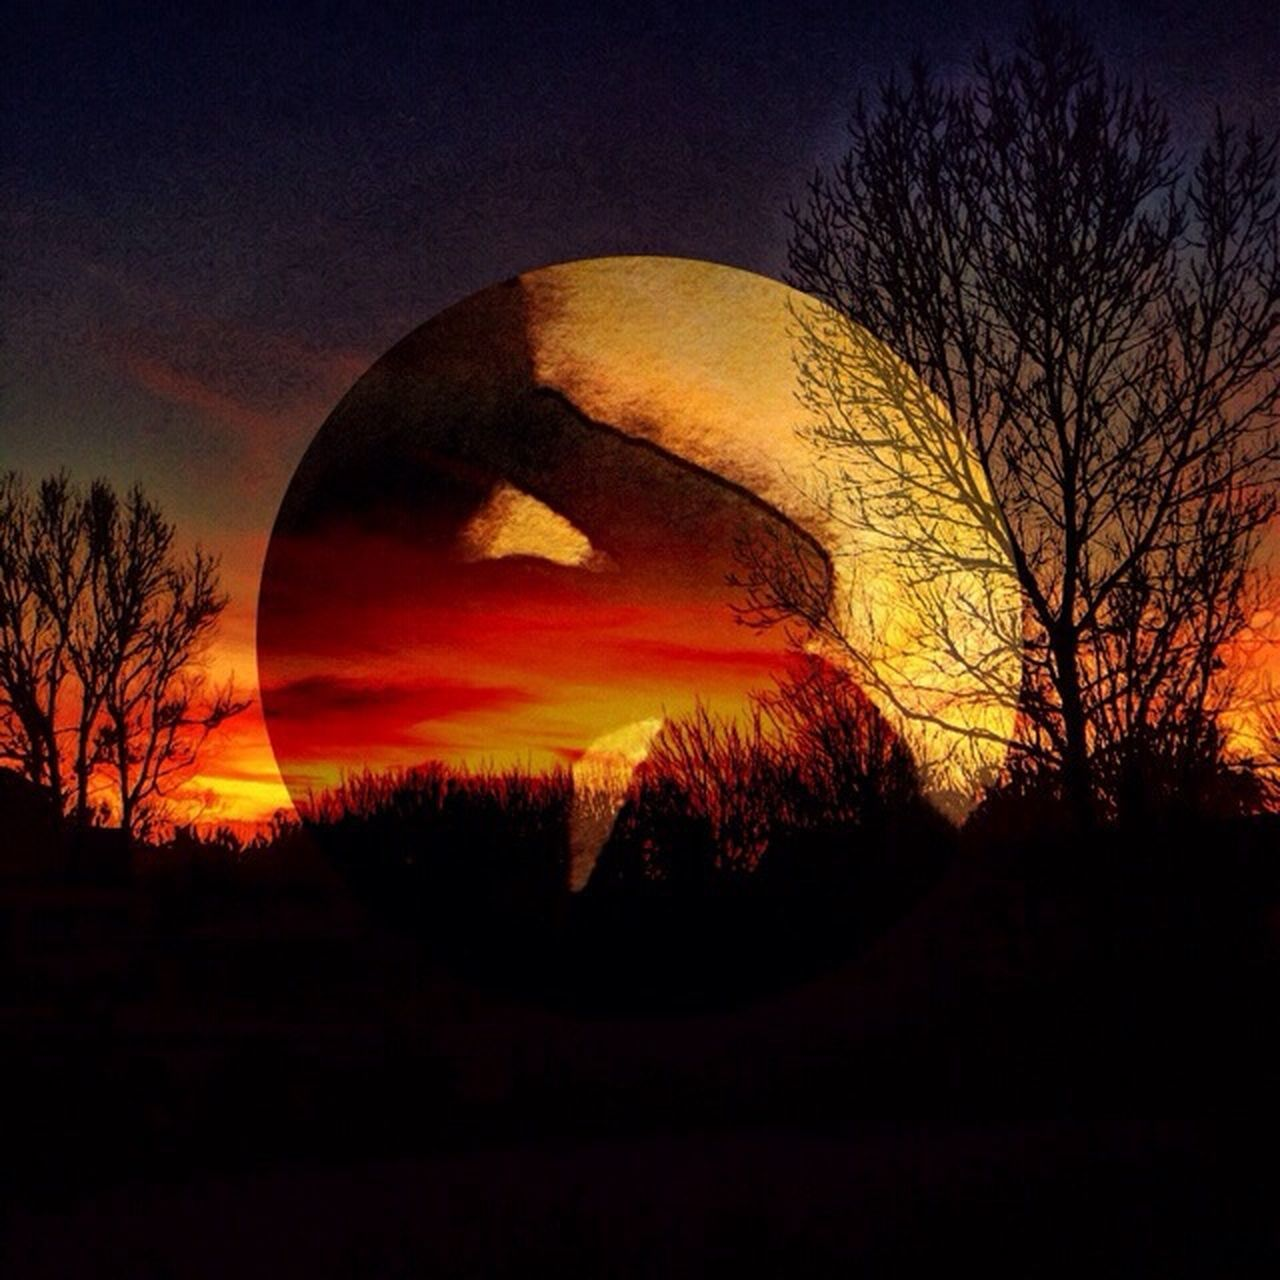 sunset, silhouette, bare tree, tree, moon, beauty in nature, nature, scenics, tranquility, sky, tranquil scene, no people, outdoors, astronomy, night, clear sky